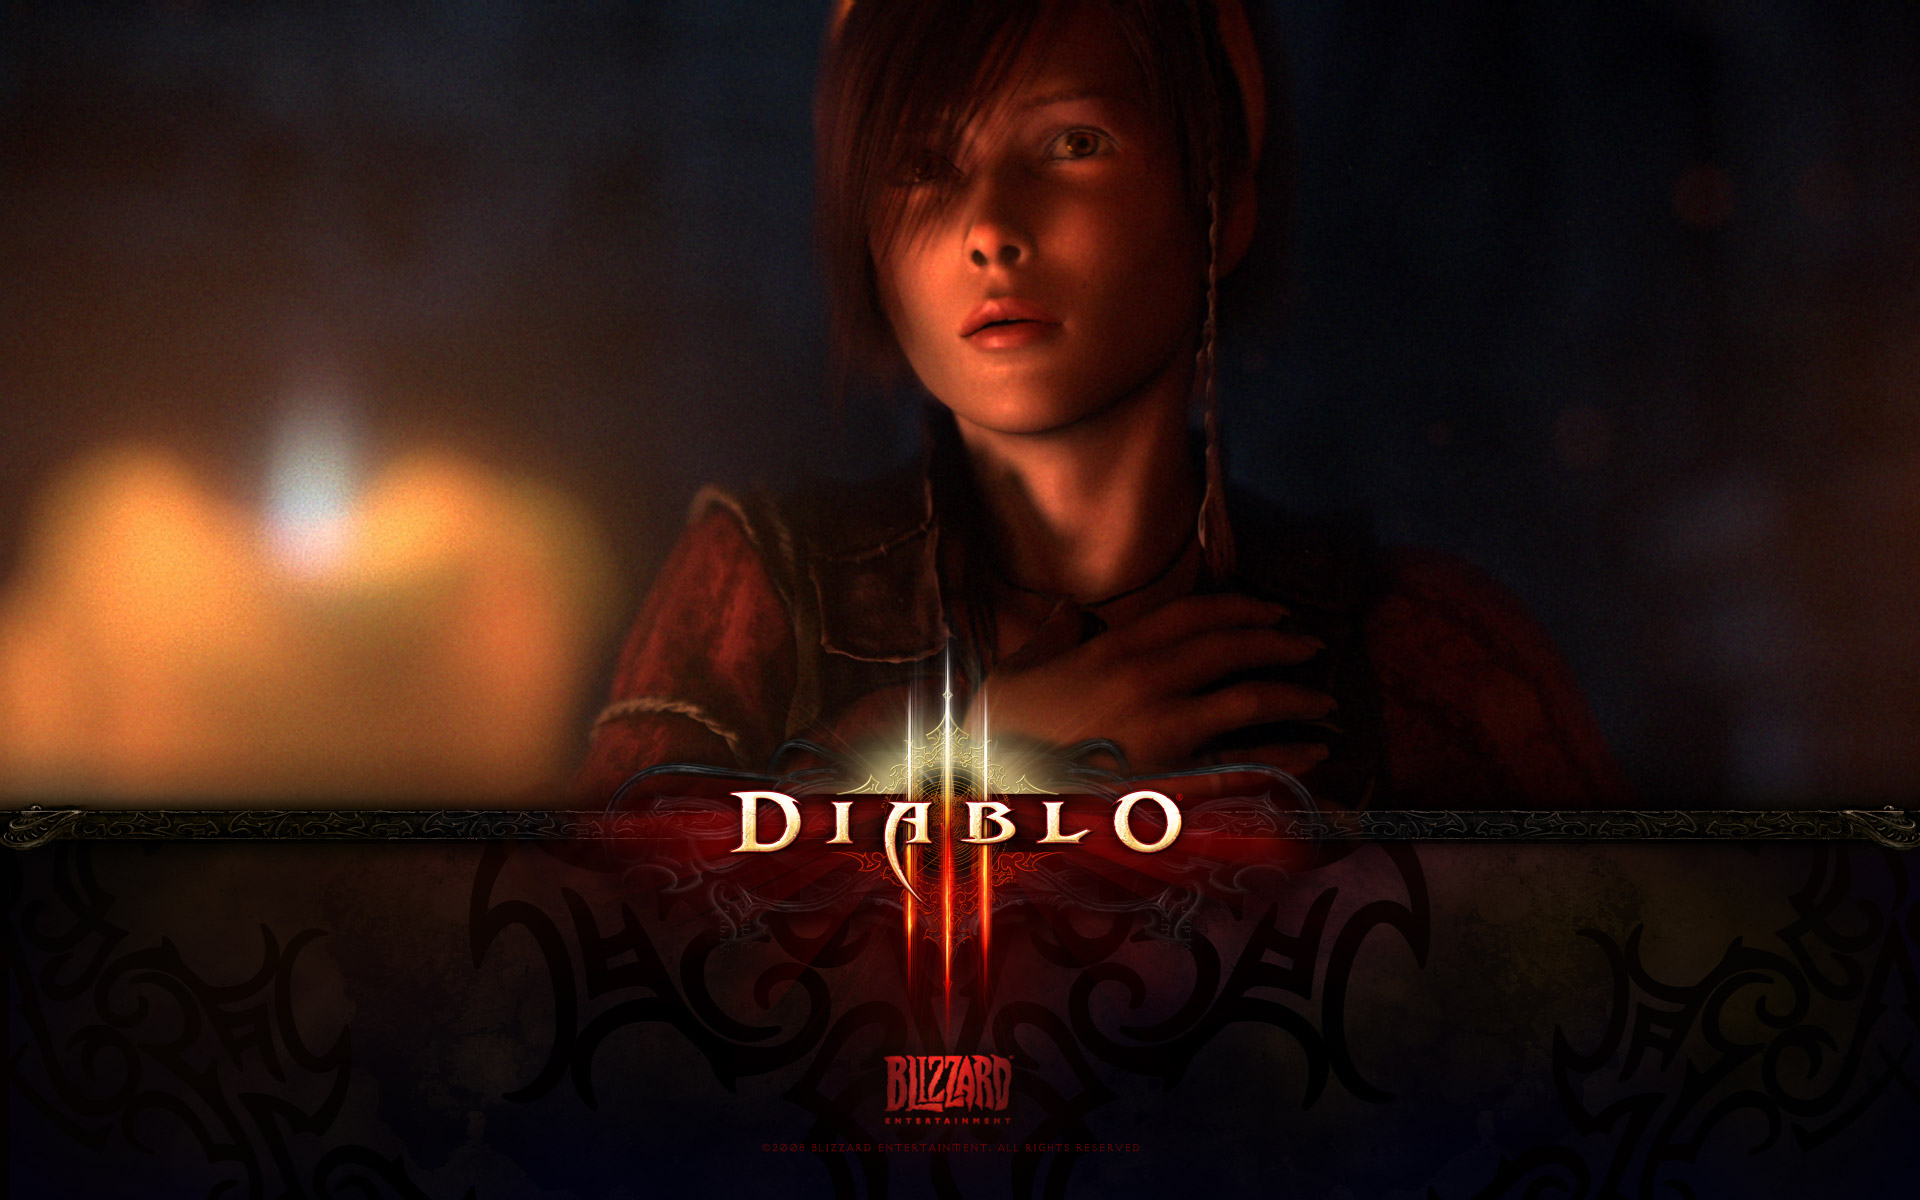 Wallpaper Jeux video Diablo 3 LEAH